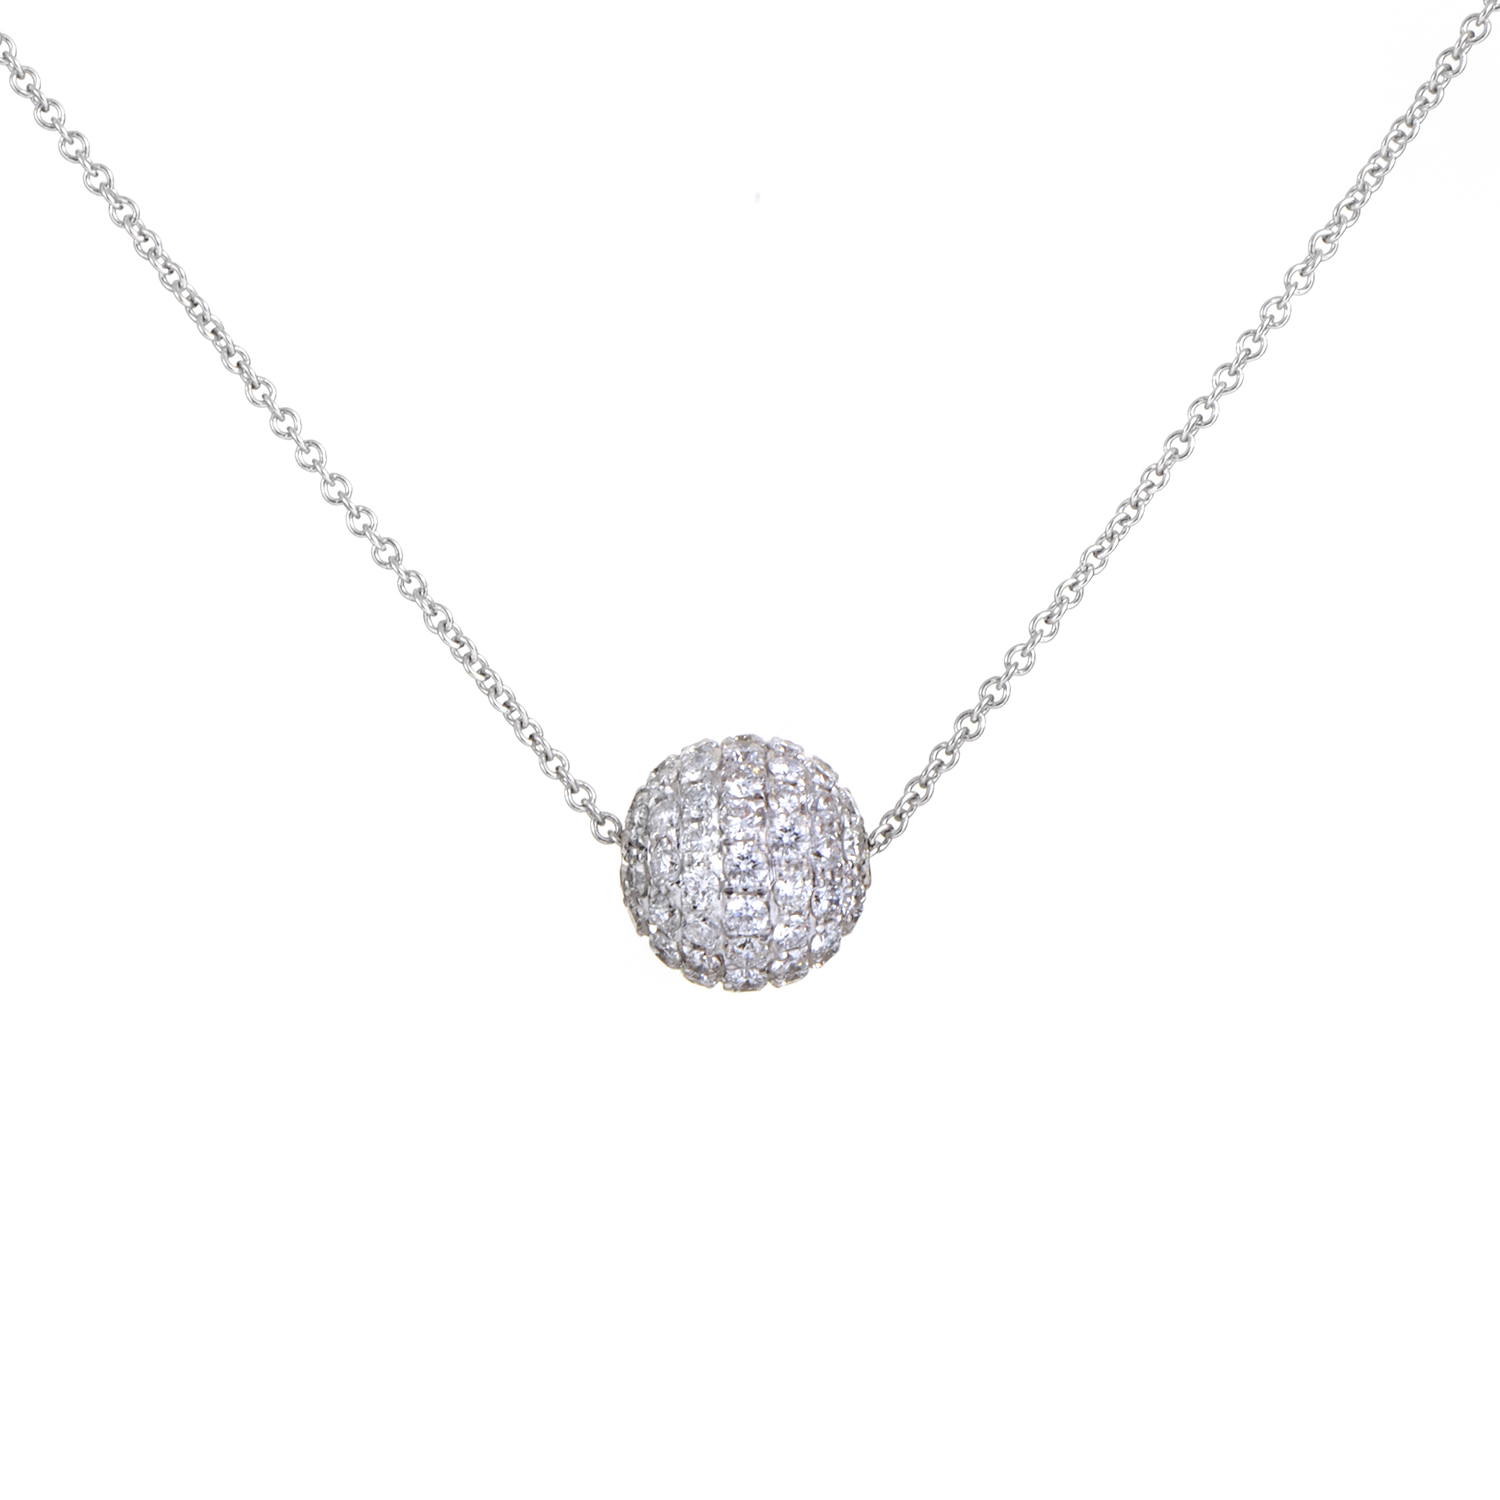 Women's 18K White Gold Petite Diamond Pave Sphere Pendant Necklace